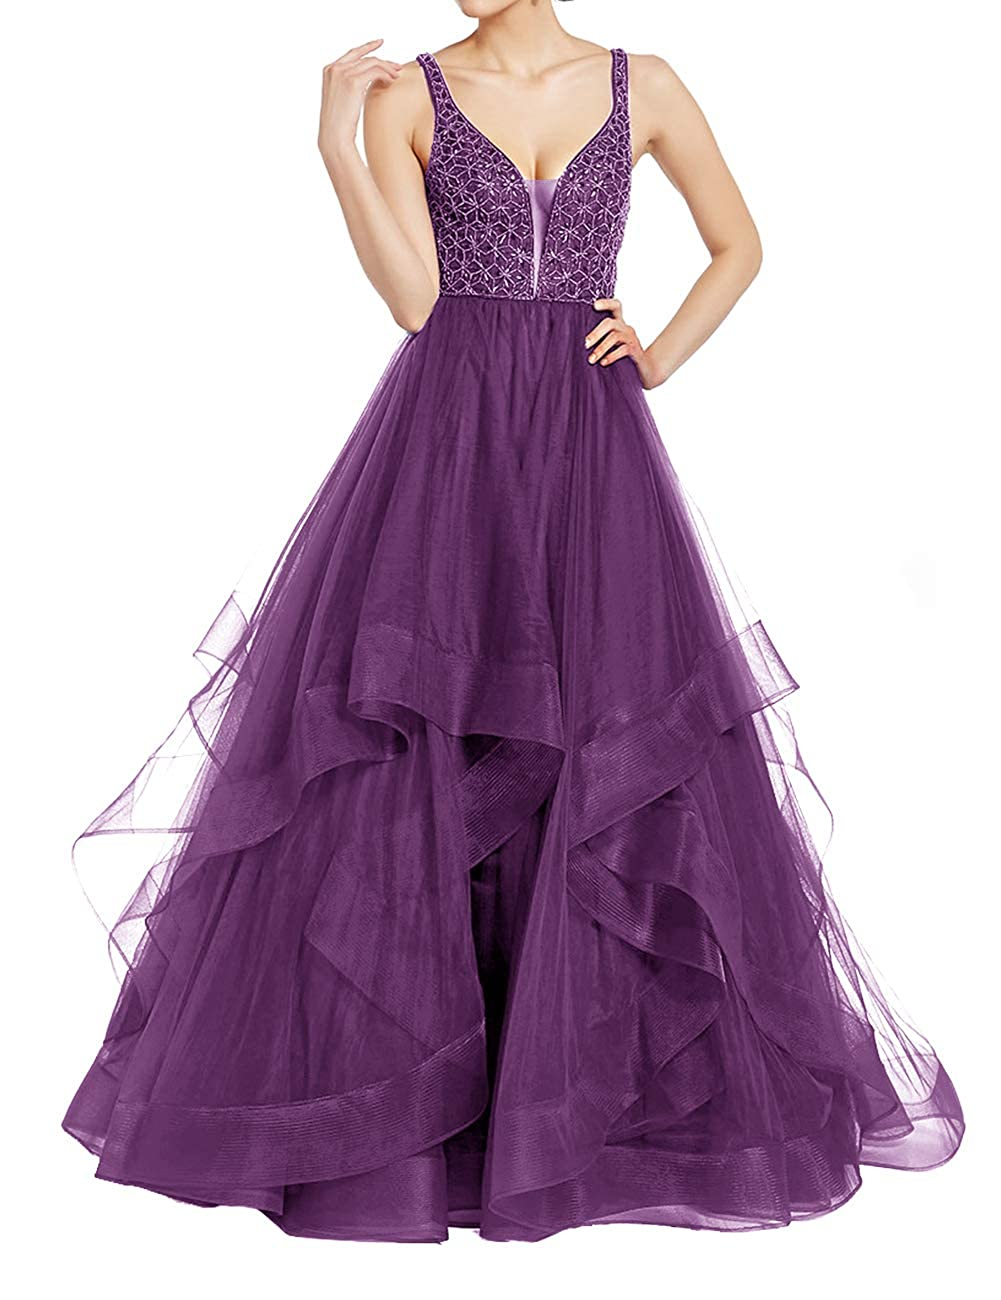 Purple Uther Elegant Tulle Evening Ball Gowns Long Beaded Formal Prom Party Dresses